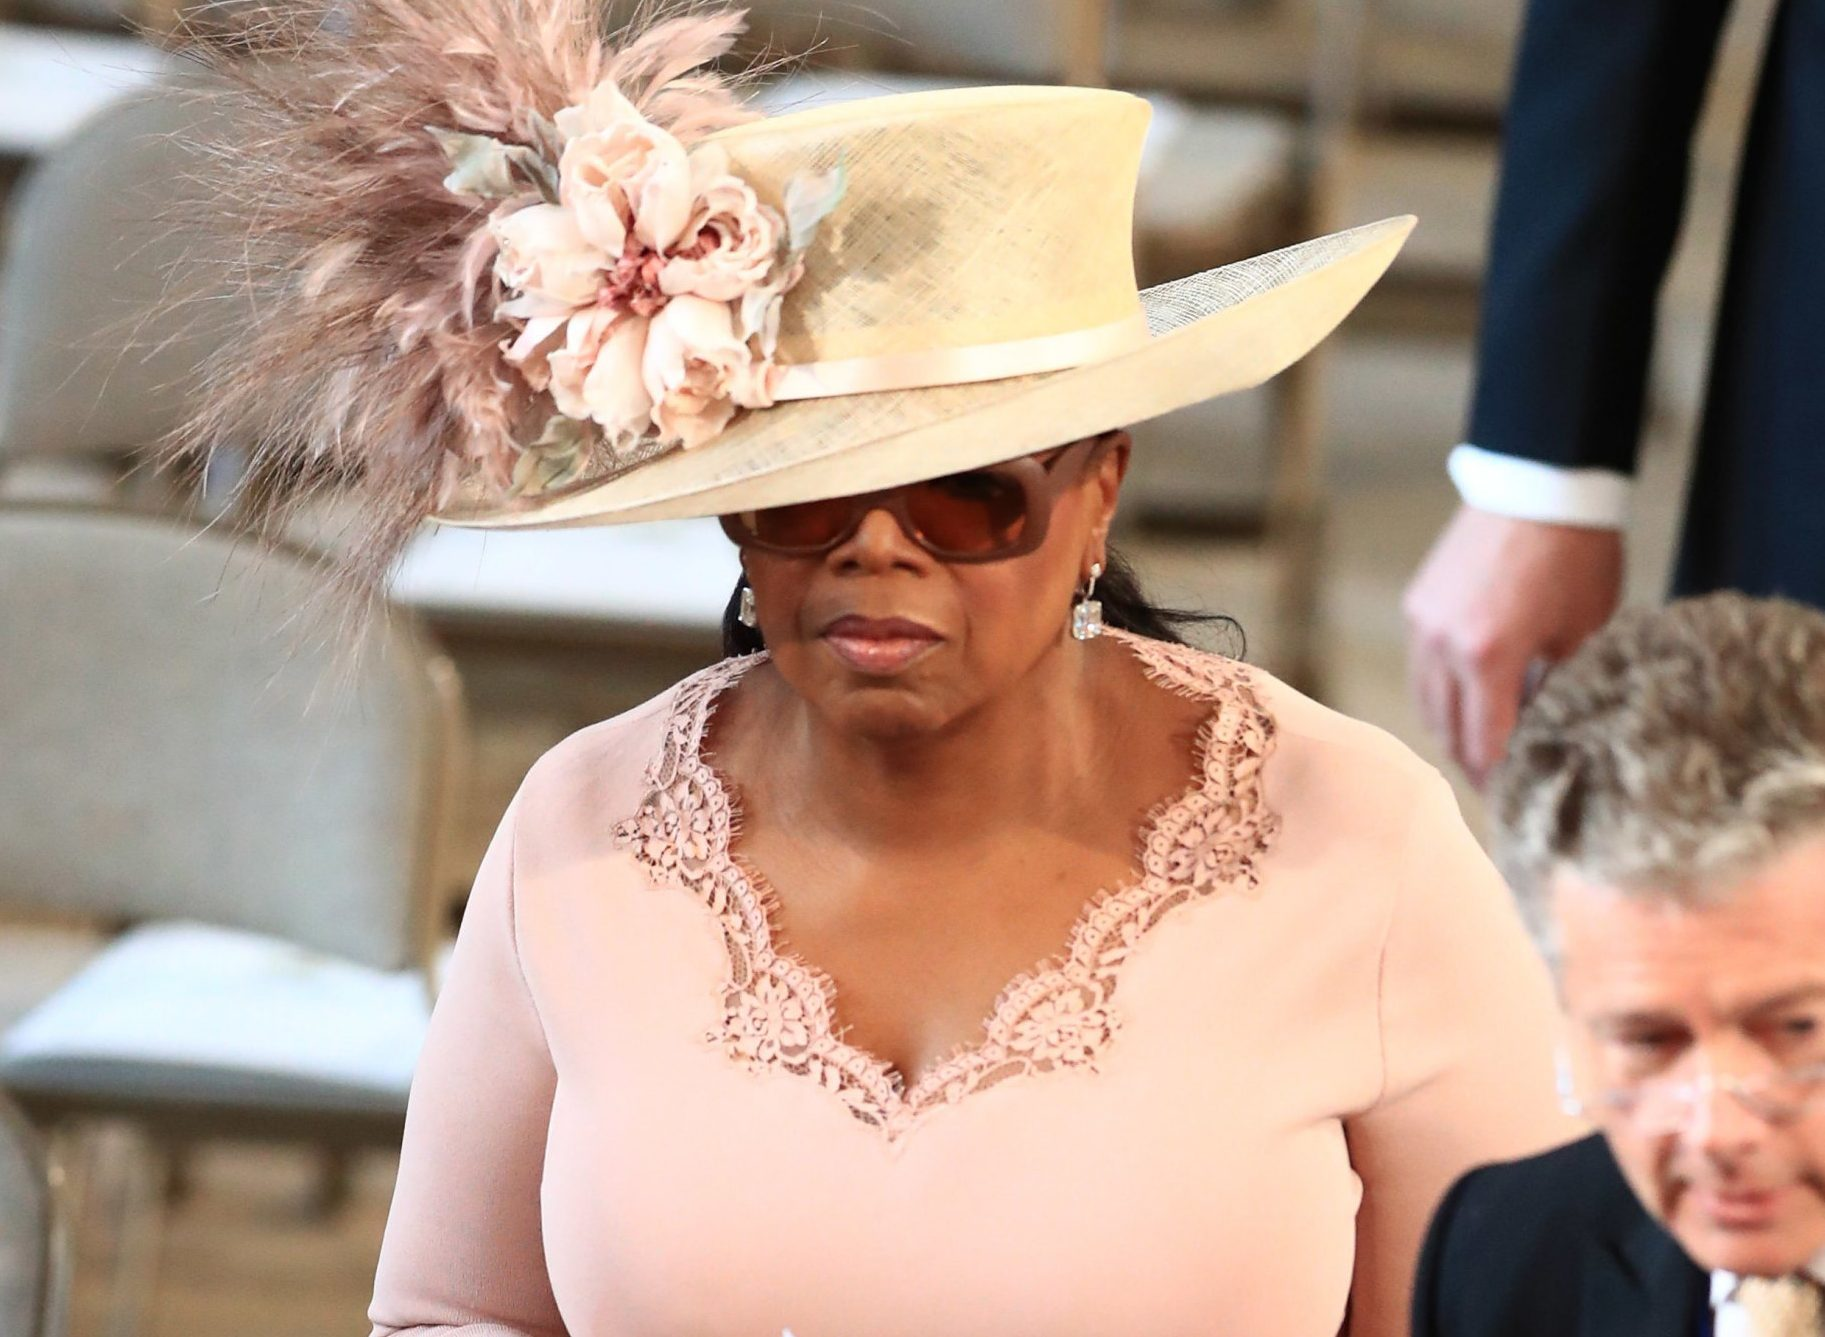 Oprah Winfrey is pretty much royalty as she attends royal wedding in amazing hat